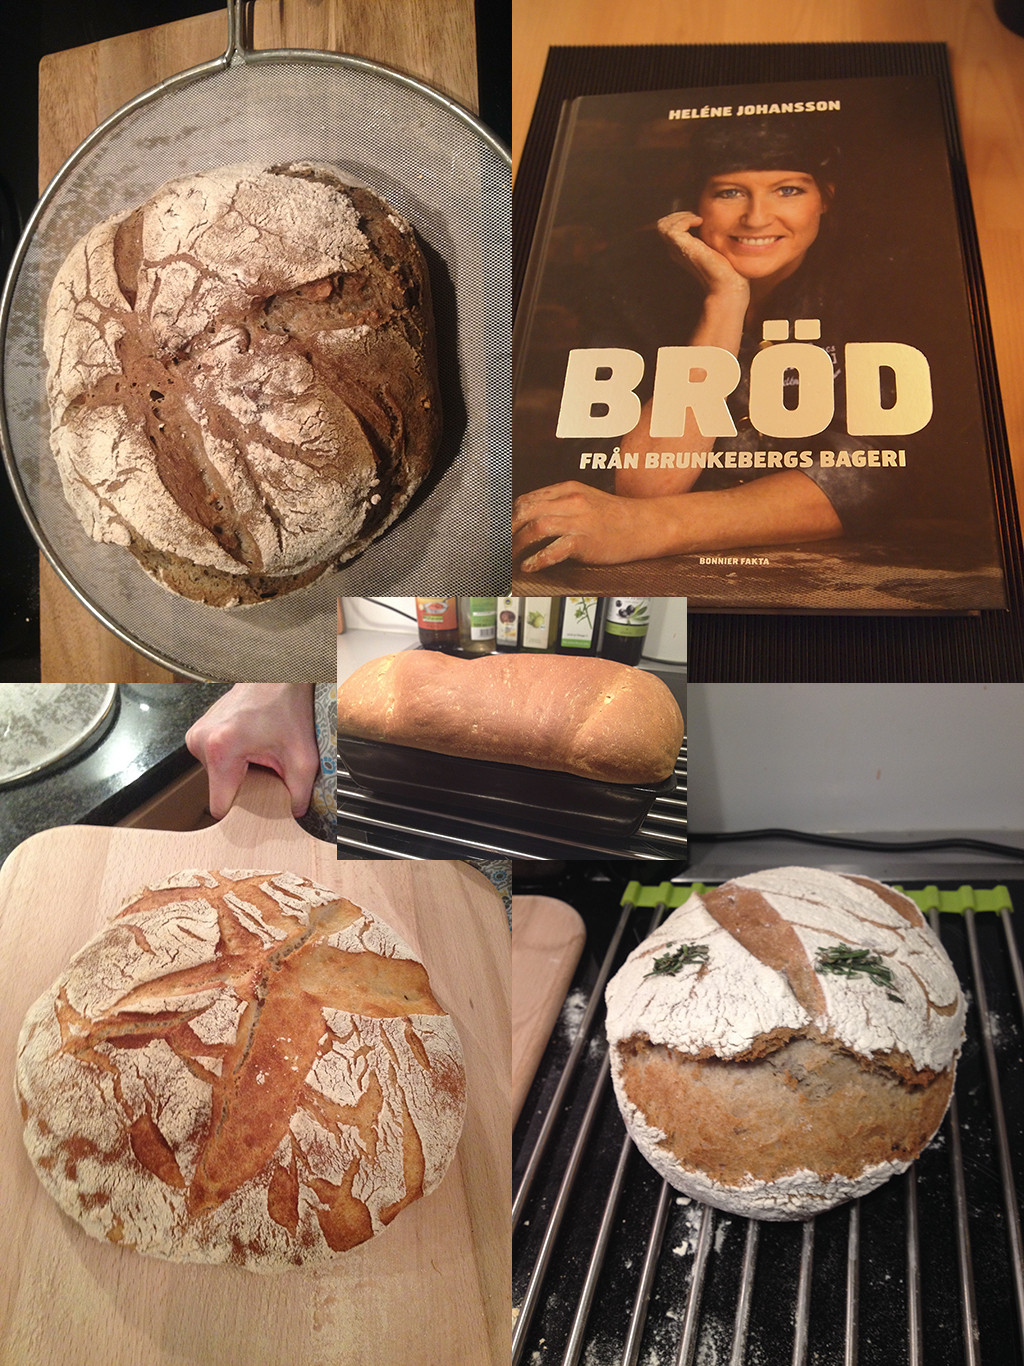 Thanks to Björn and Helene Johansson (not related) fabulously fluffy (inside) and crispy (outside) bread creations succeed!